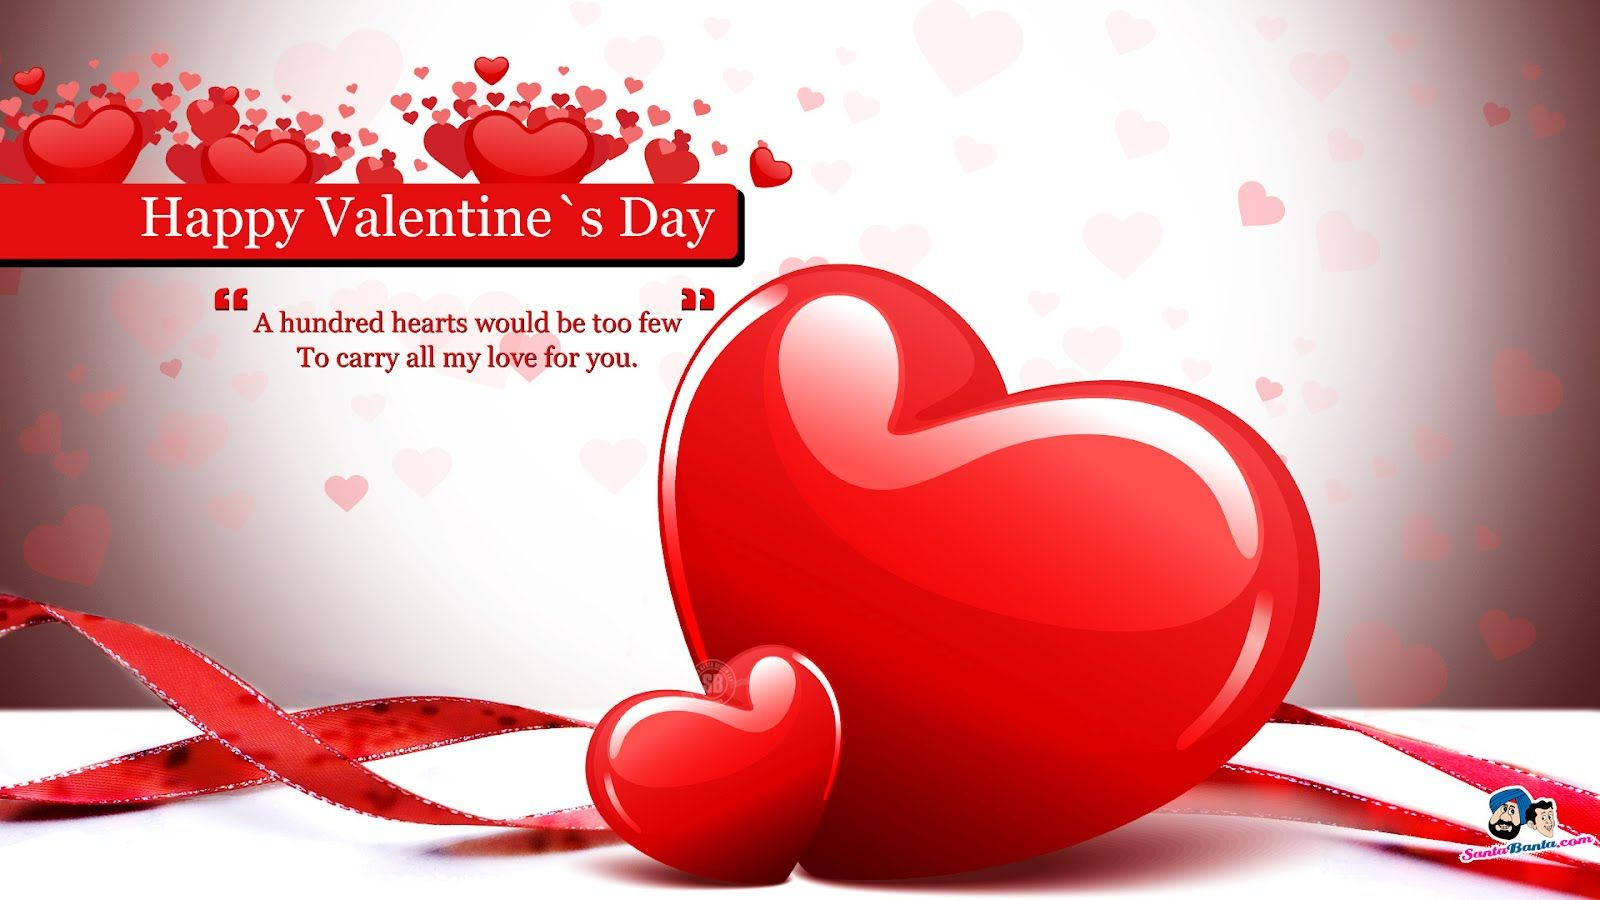 Beautiful Valentine Day Greetings with Full of Love valentineday